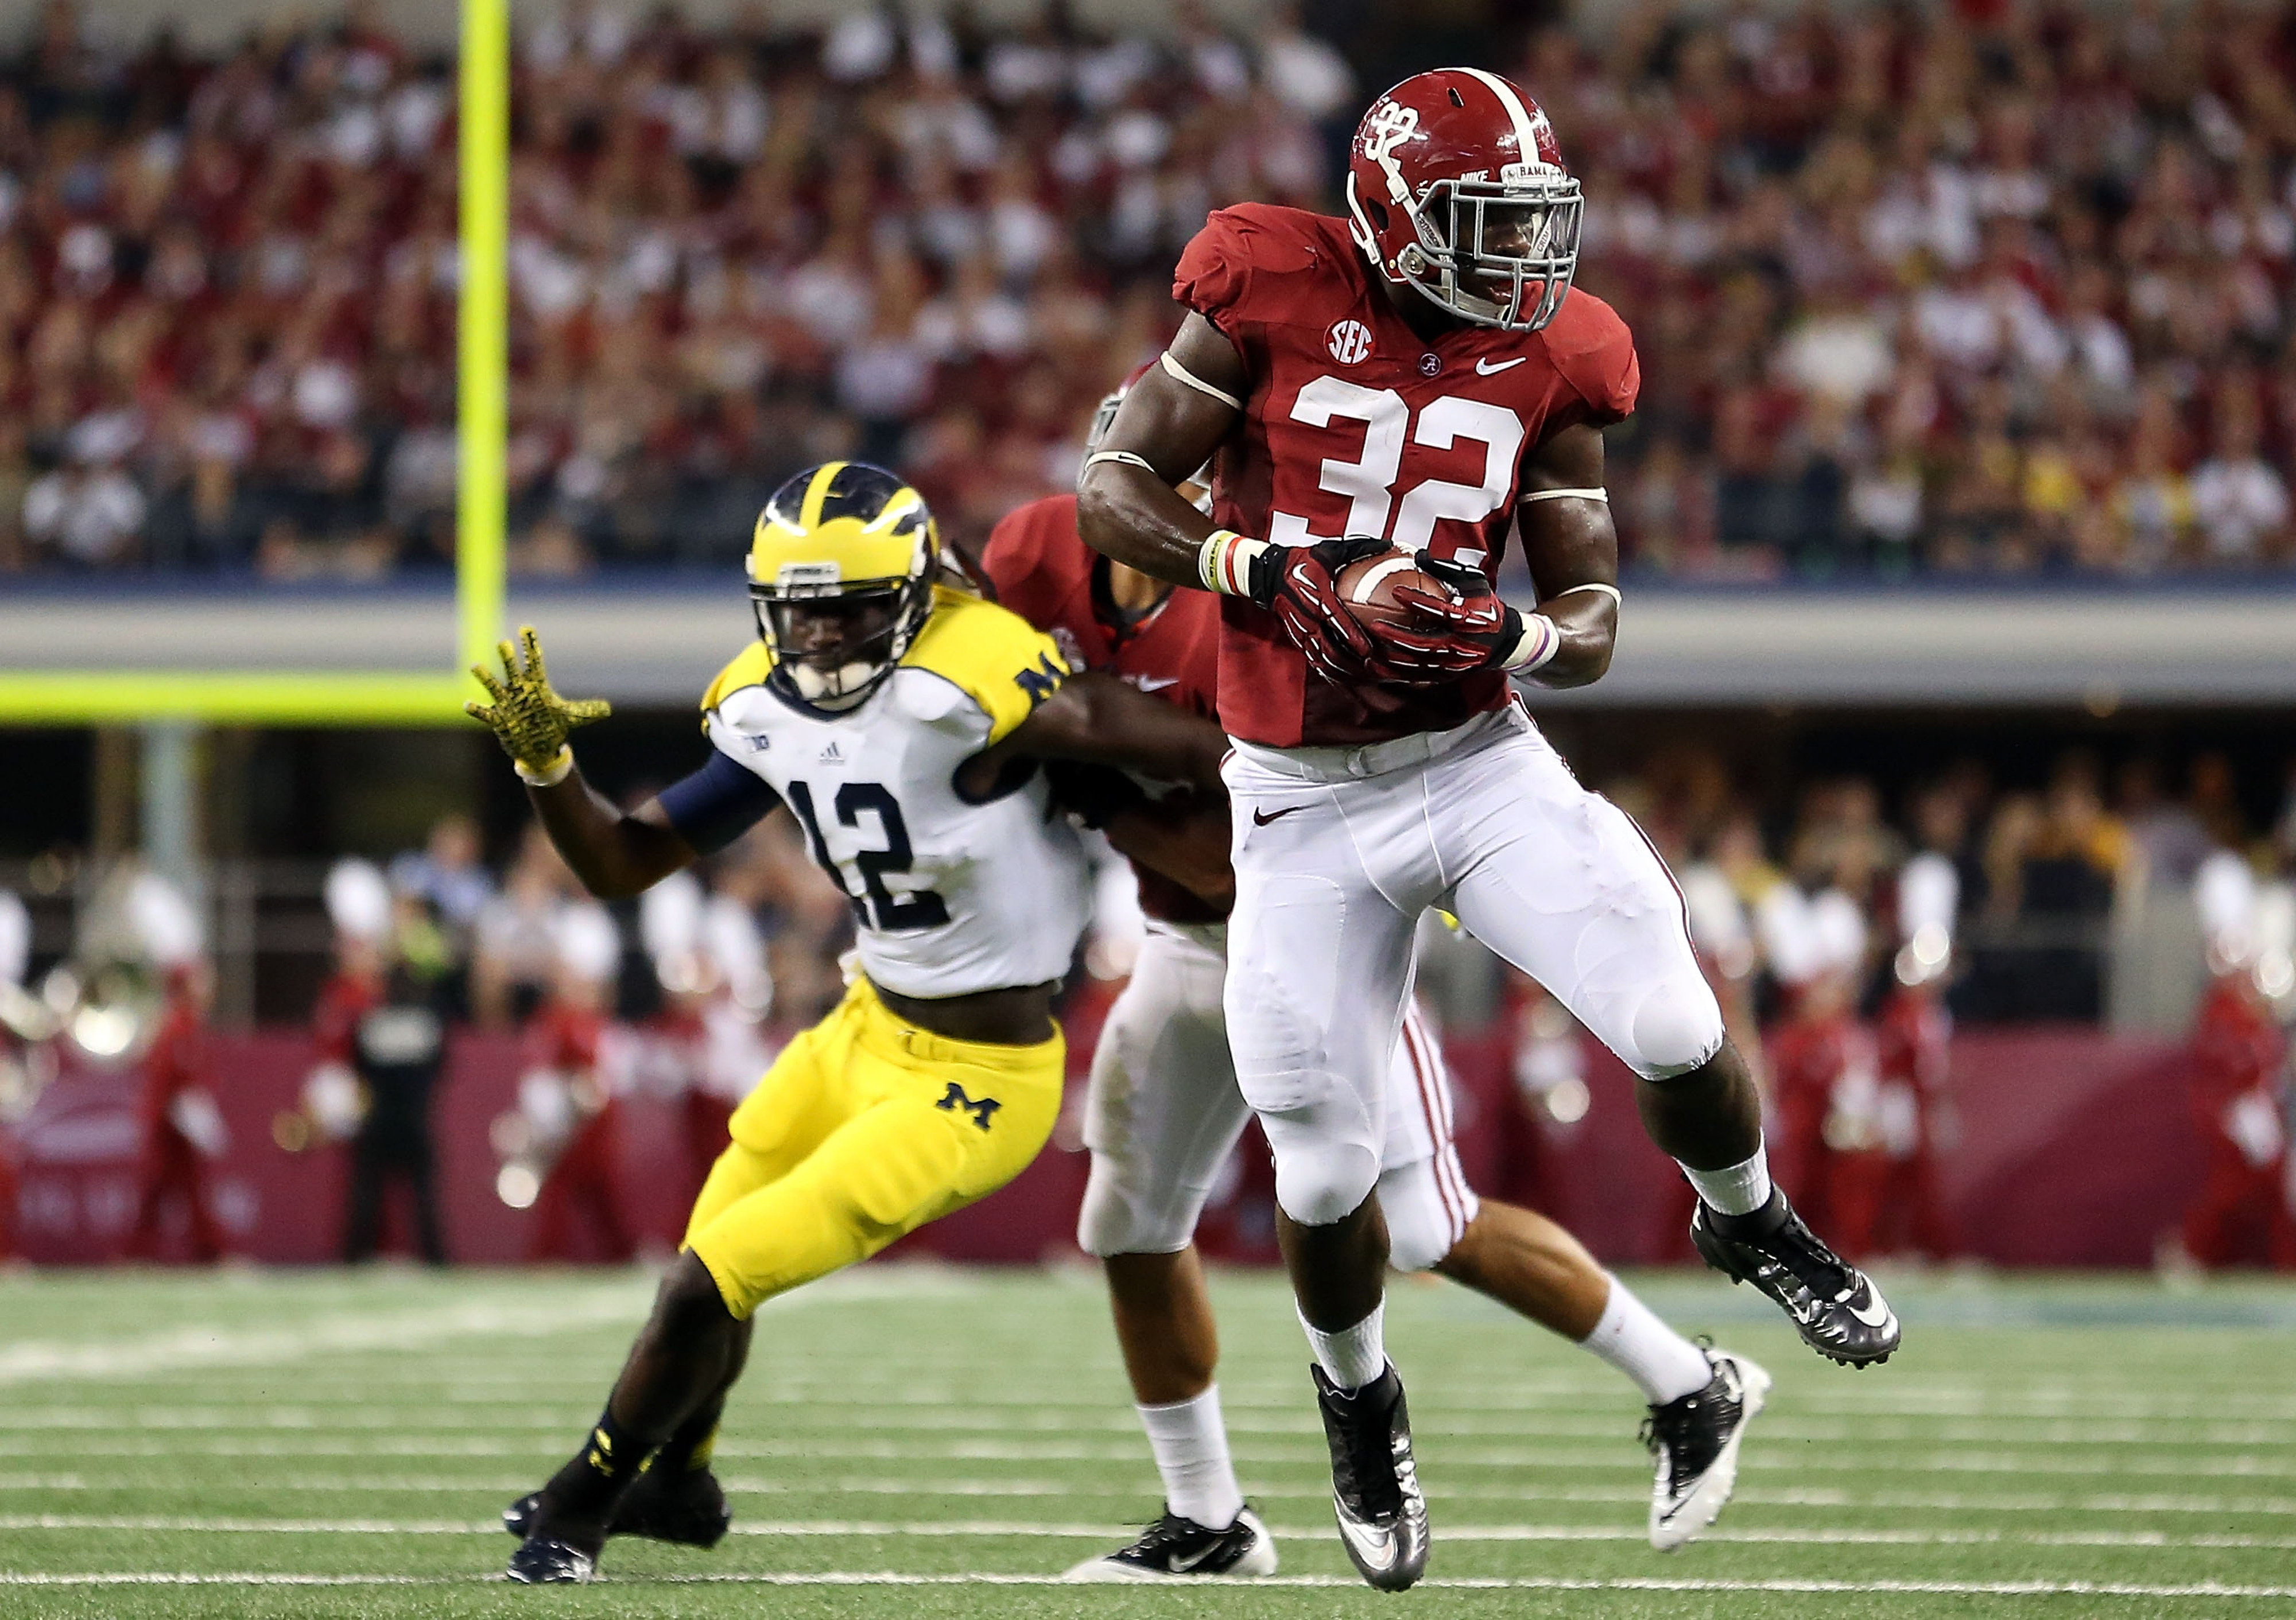 C.J. Mosley (32) intercepts a pass against Michigan. because Mosley is awesome, and Michigan sucks.